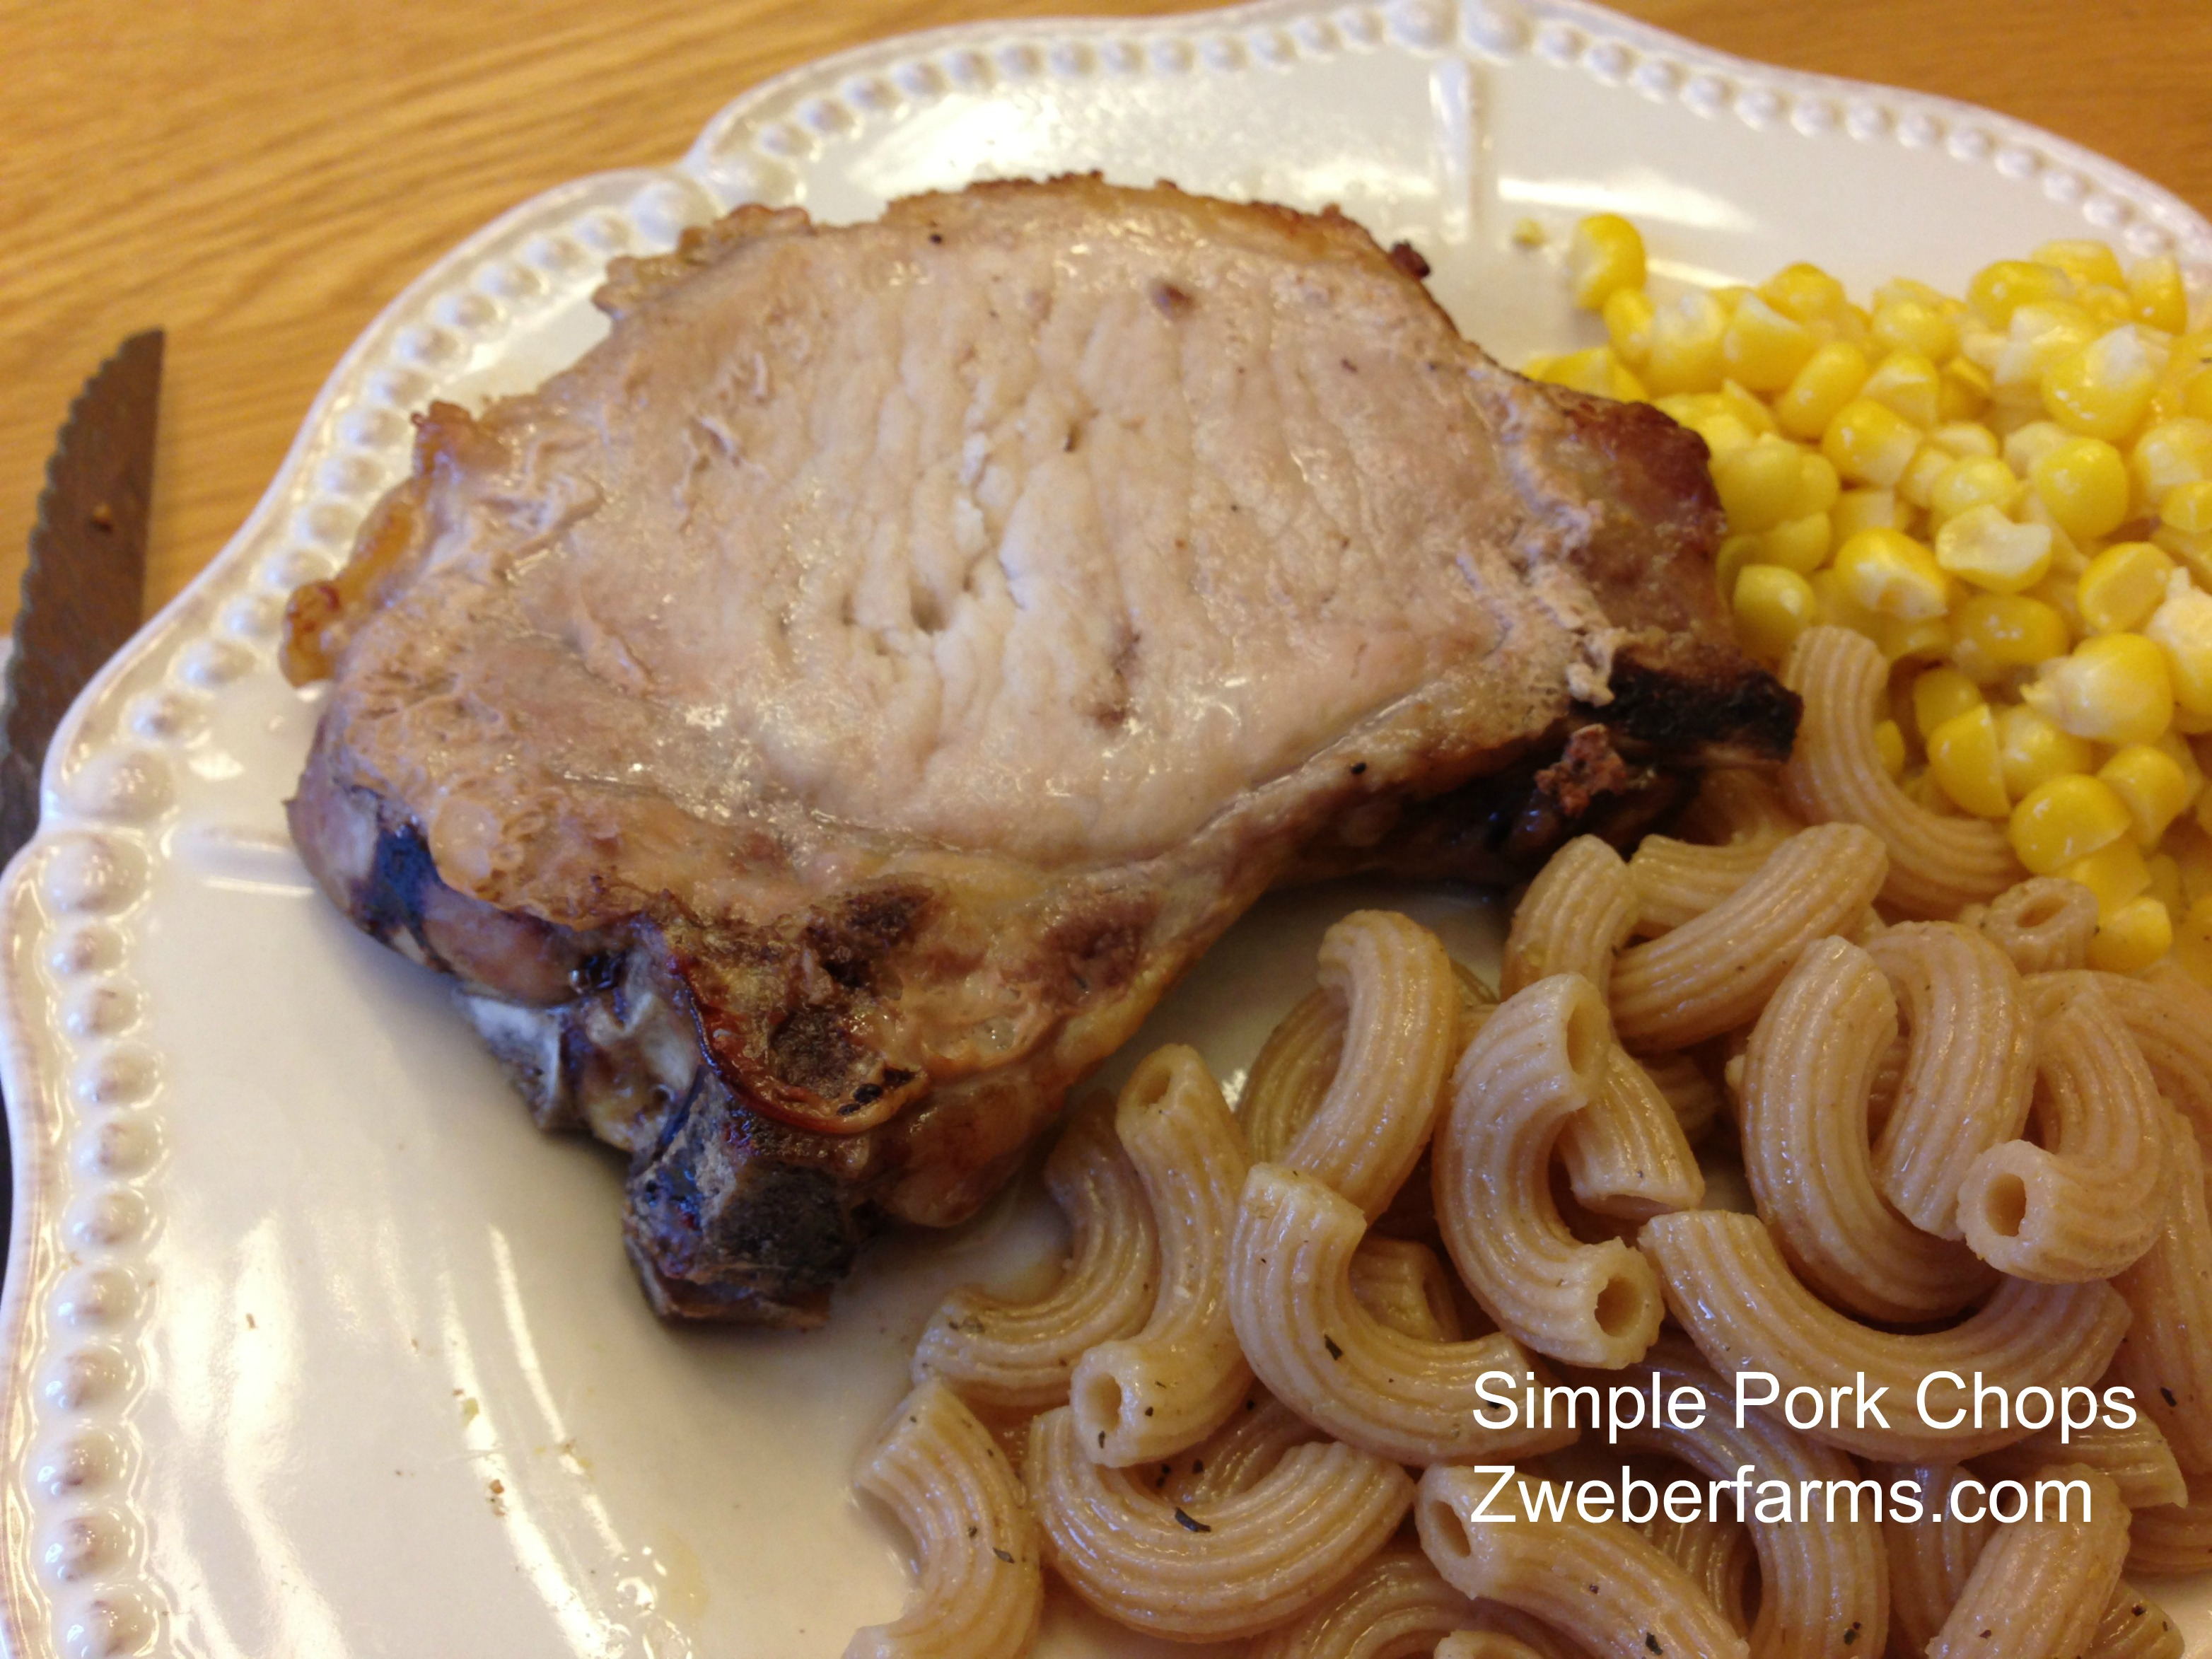 Simple Oven Baked Pork Chop Recipe Zweberfarms